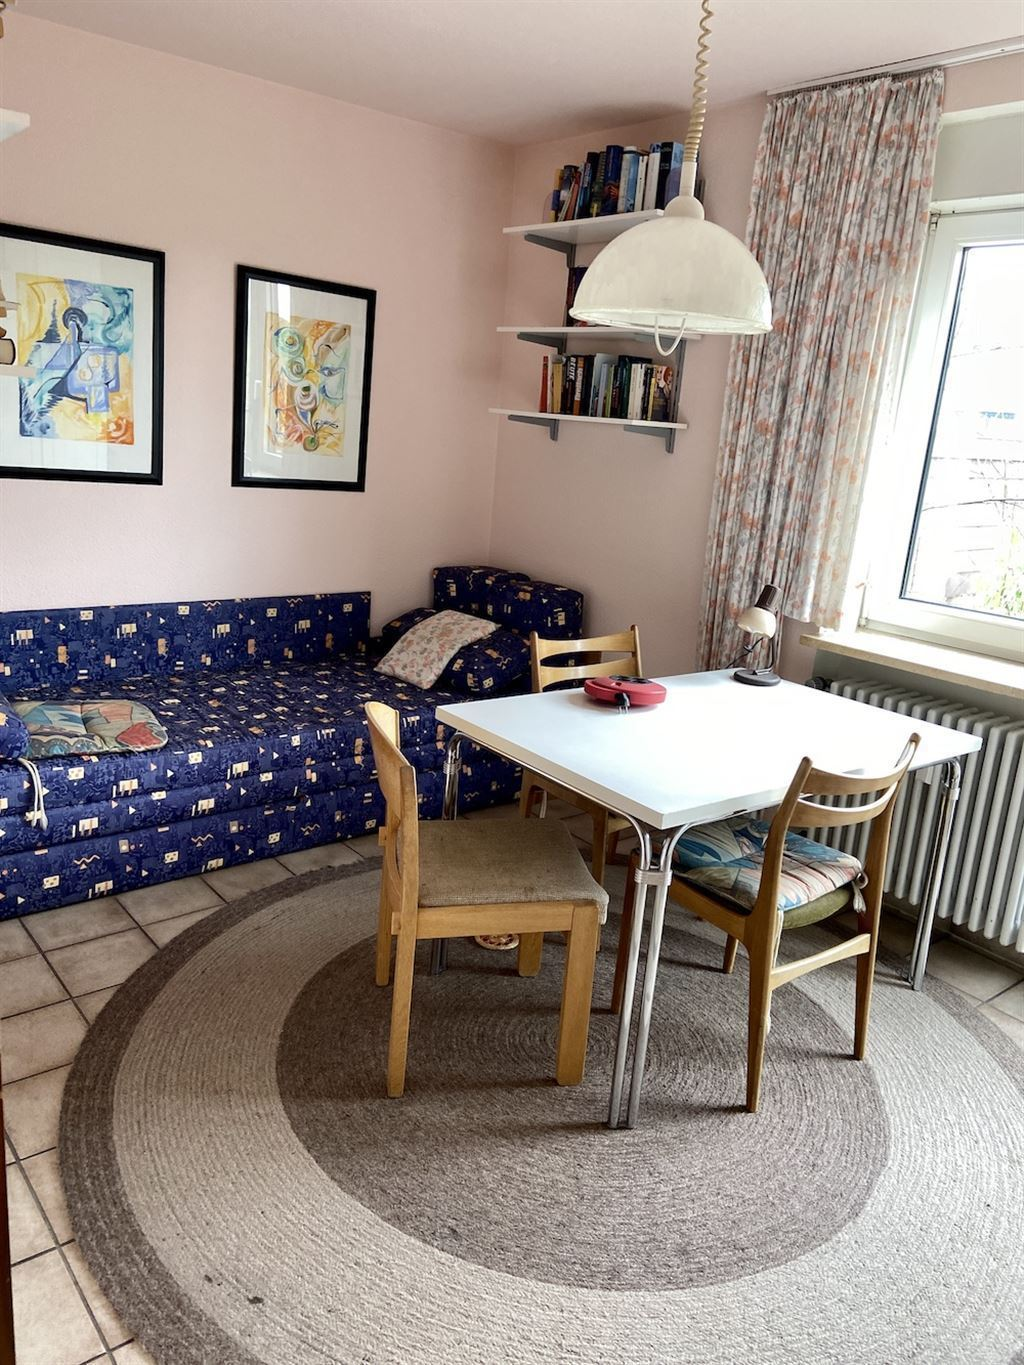 Sclafzimmer Nr.2